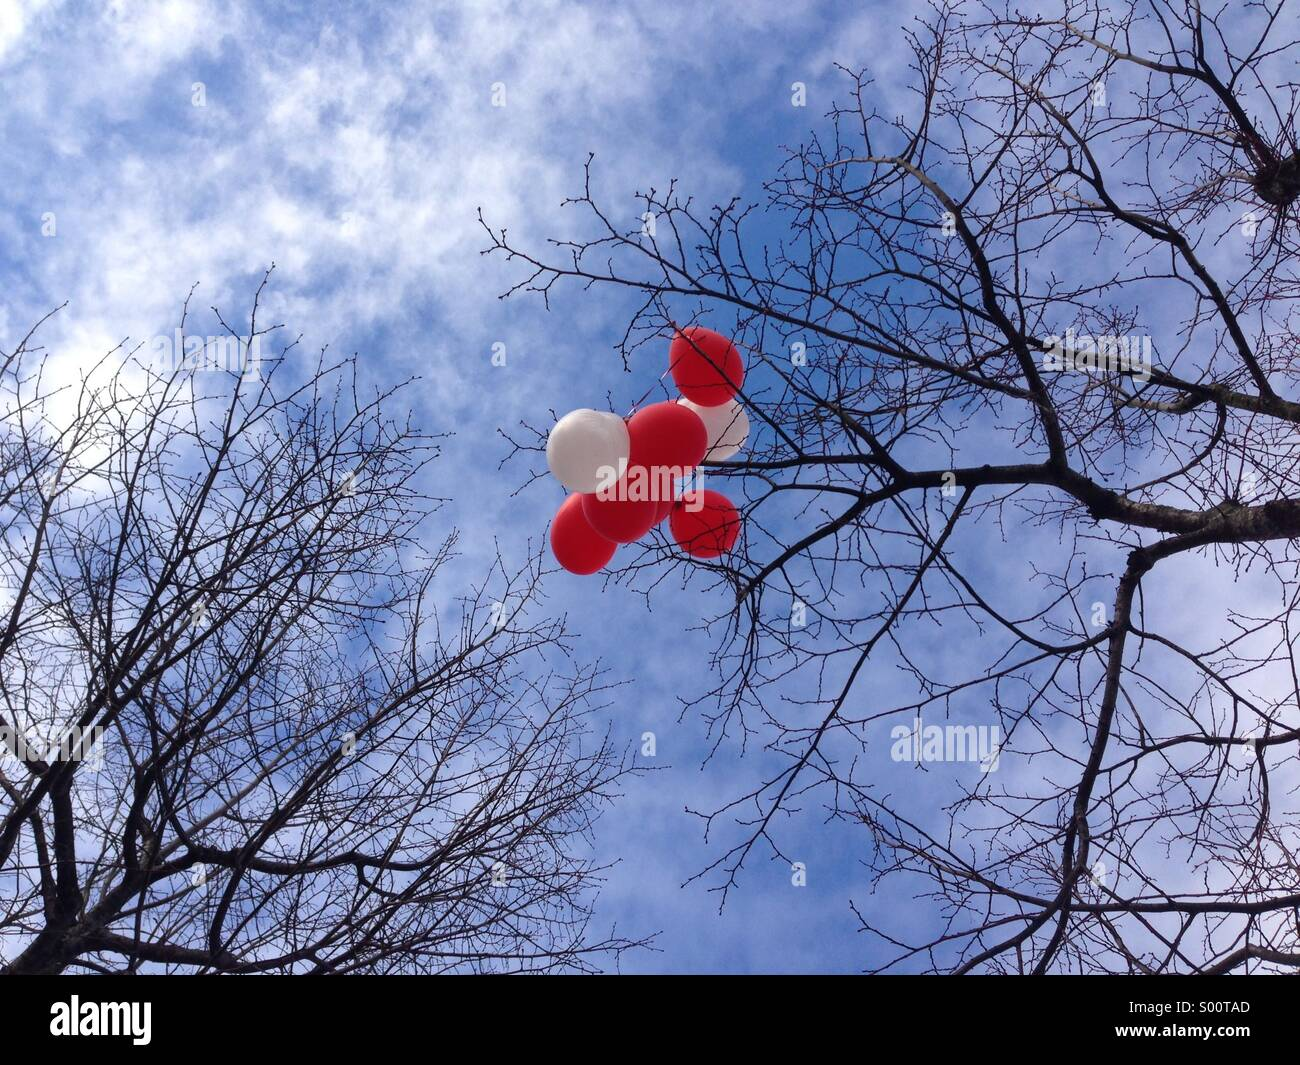 white and red balloons caught in the bare branches of a tree in winter - Stock Image